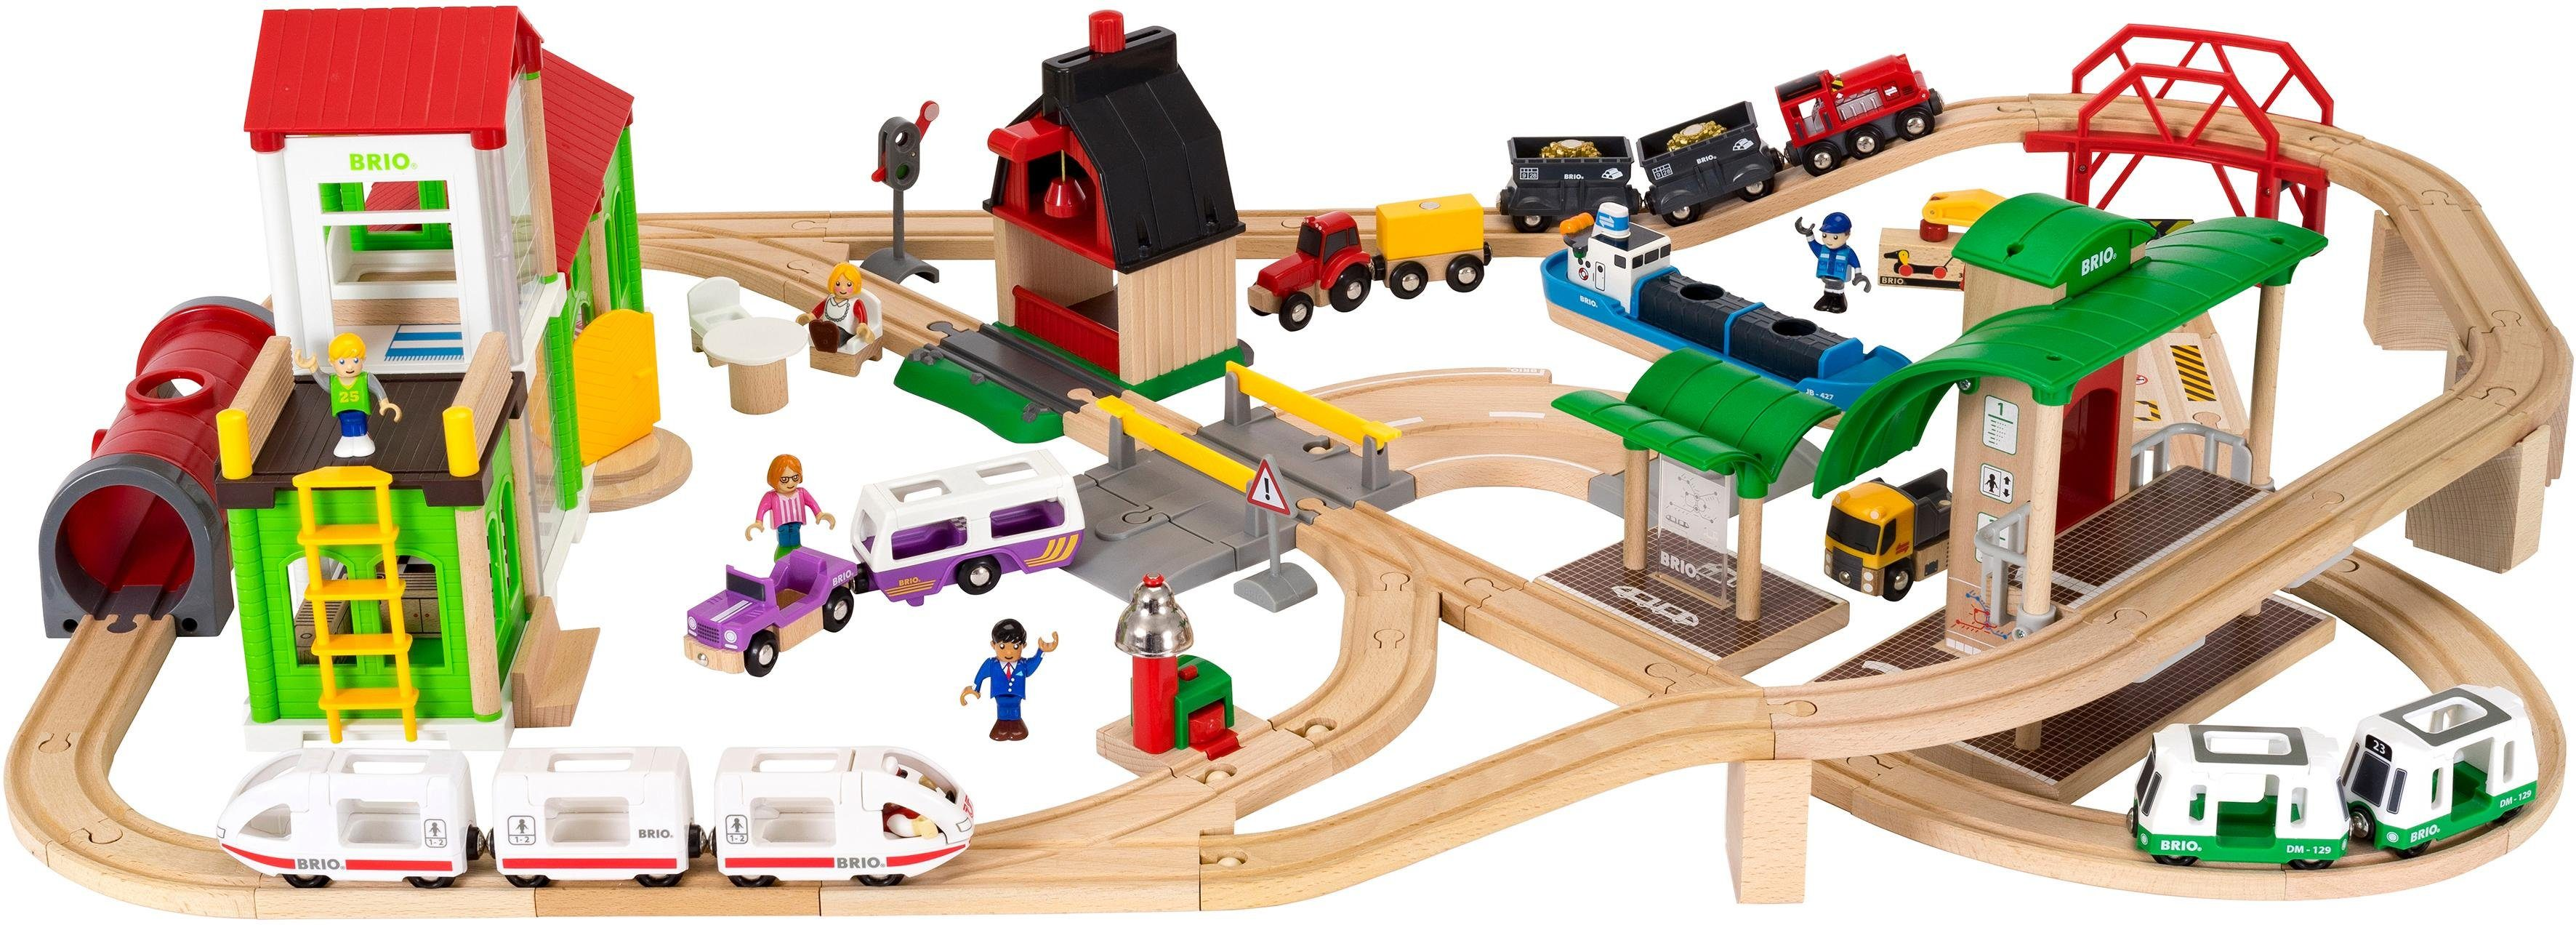 Brio® Holzeisenbahn Set, »BRIO® WORLD Set Deluxe«